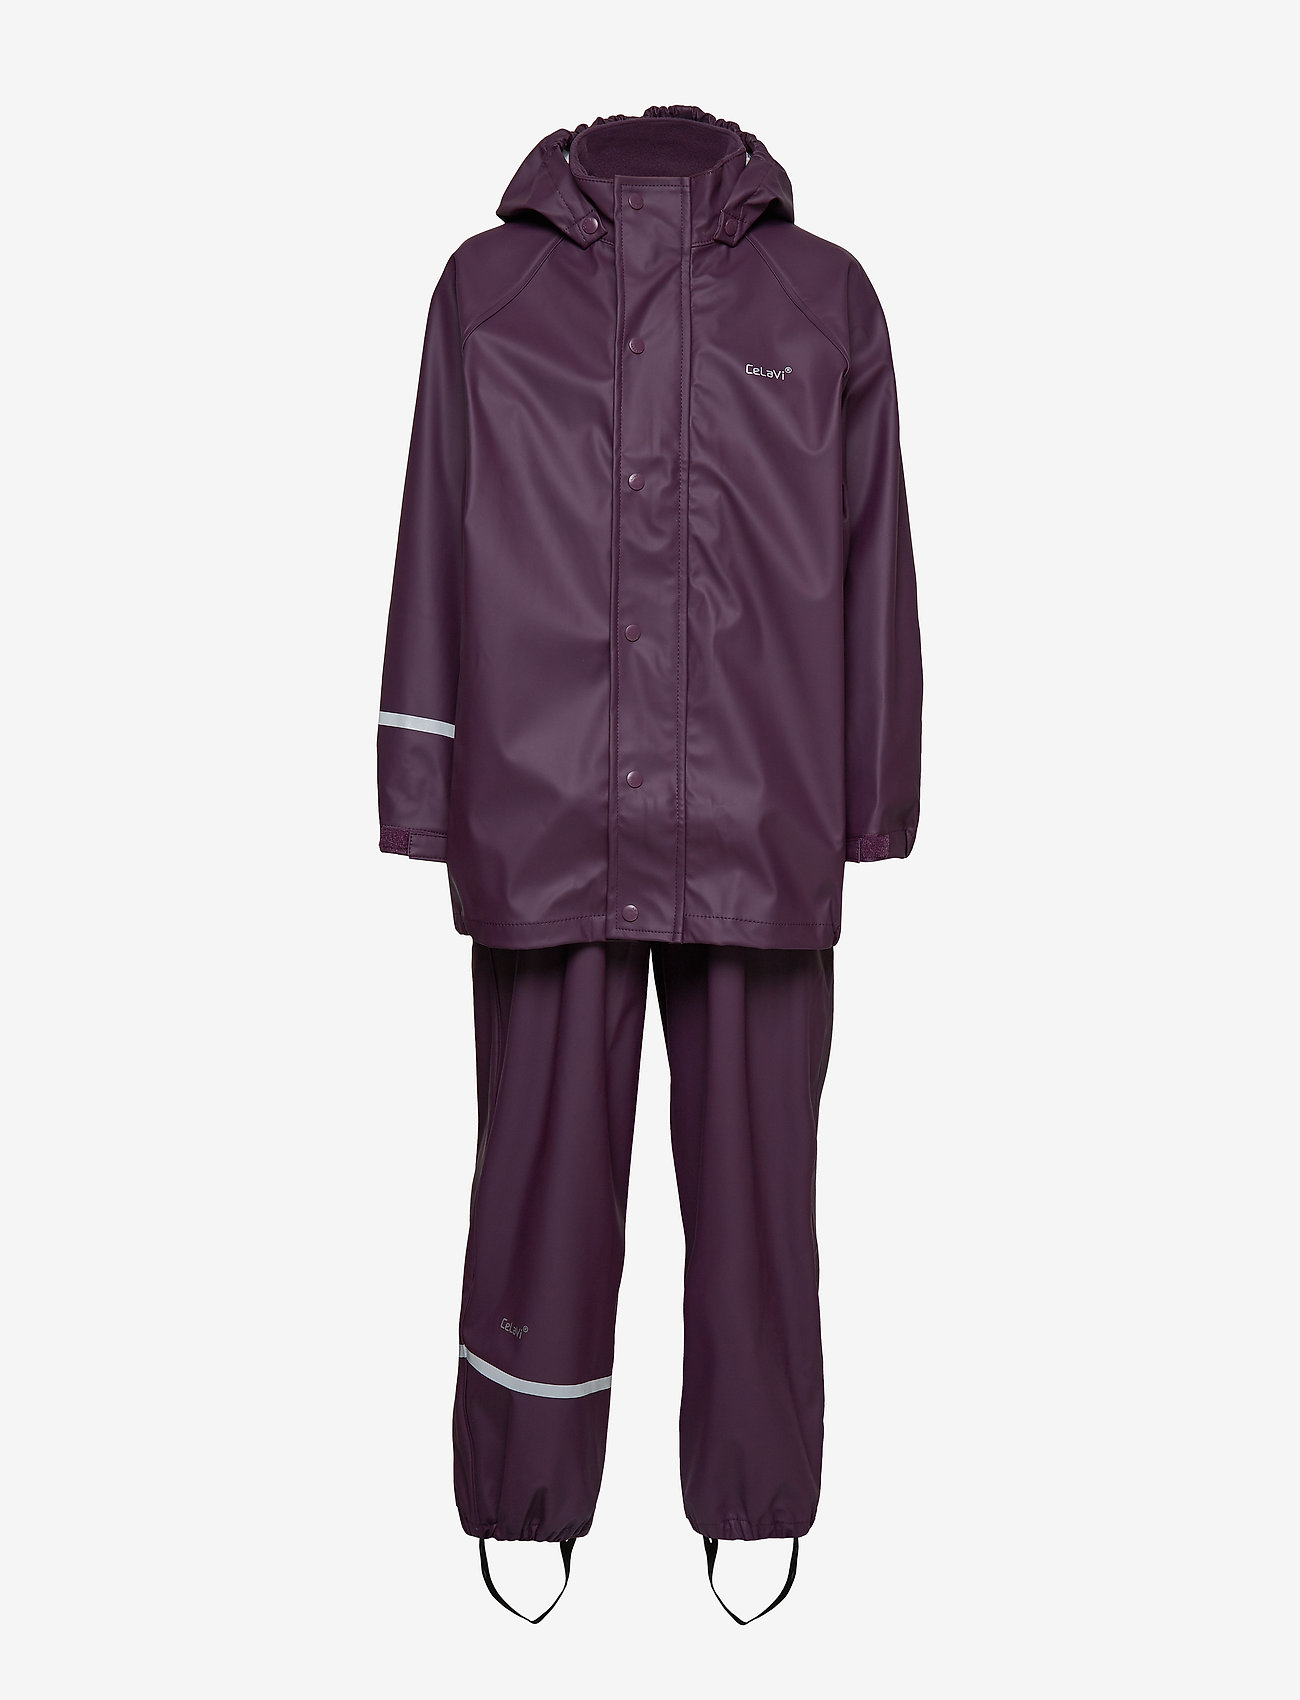 CeLaVi - Basci rainwear set, solid - regnkläder - blackberry wine